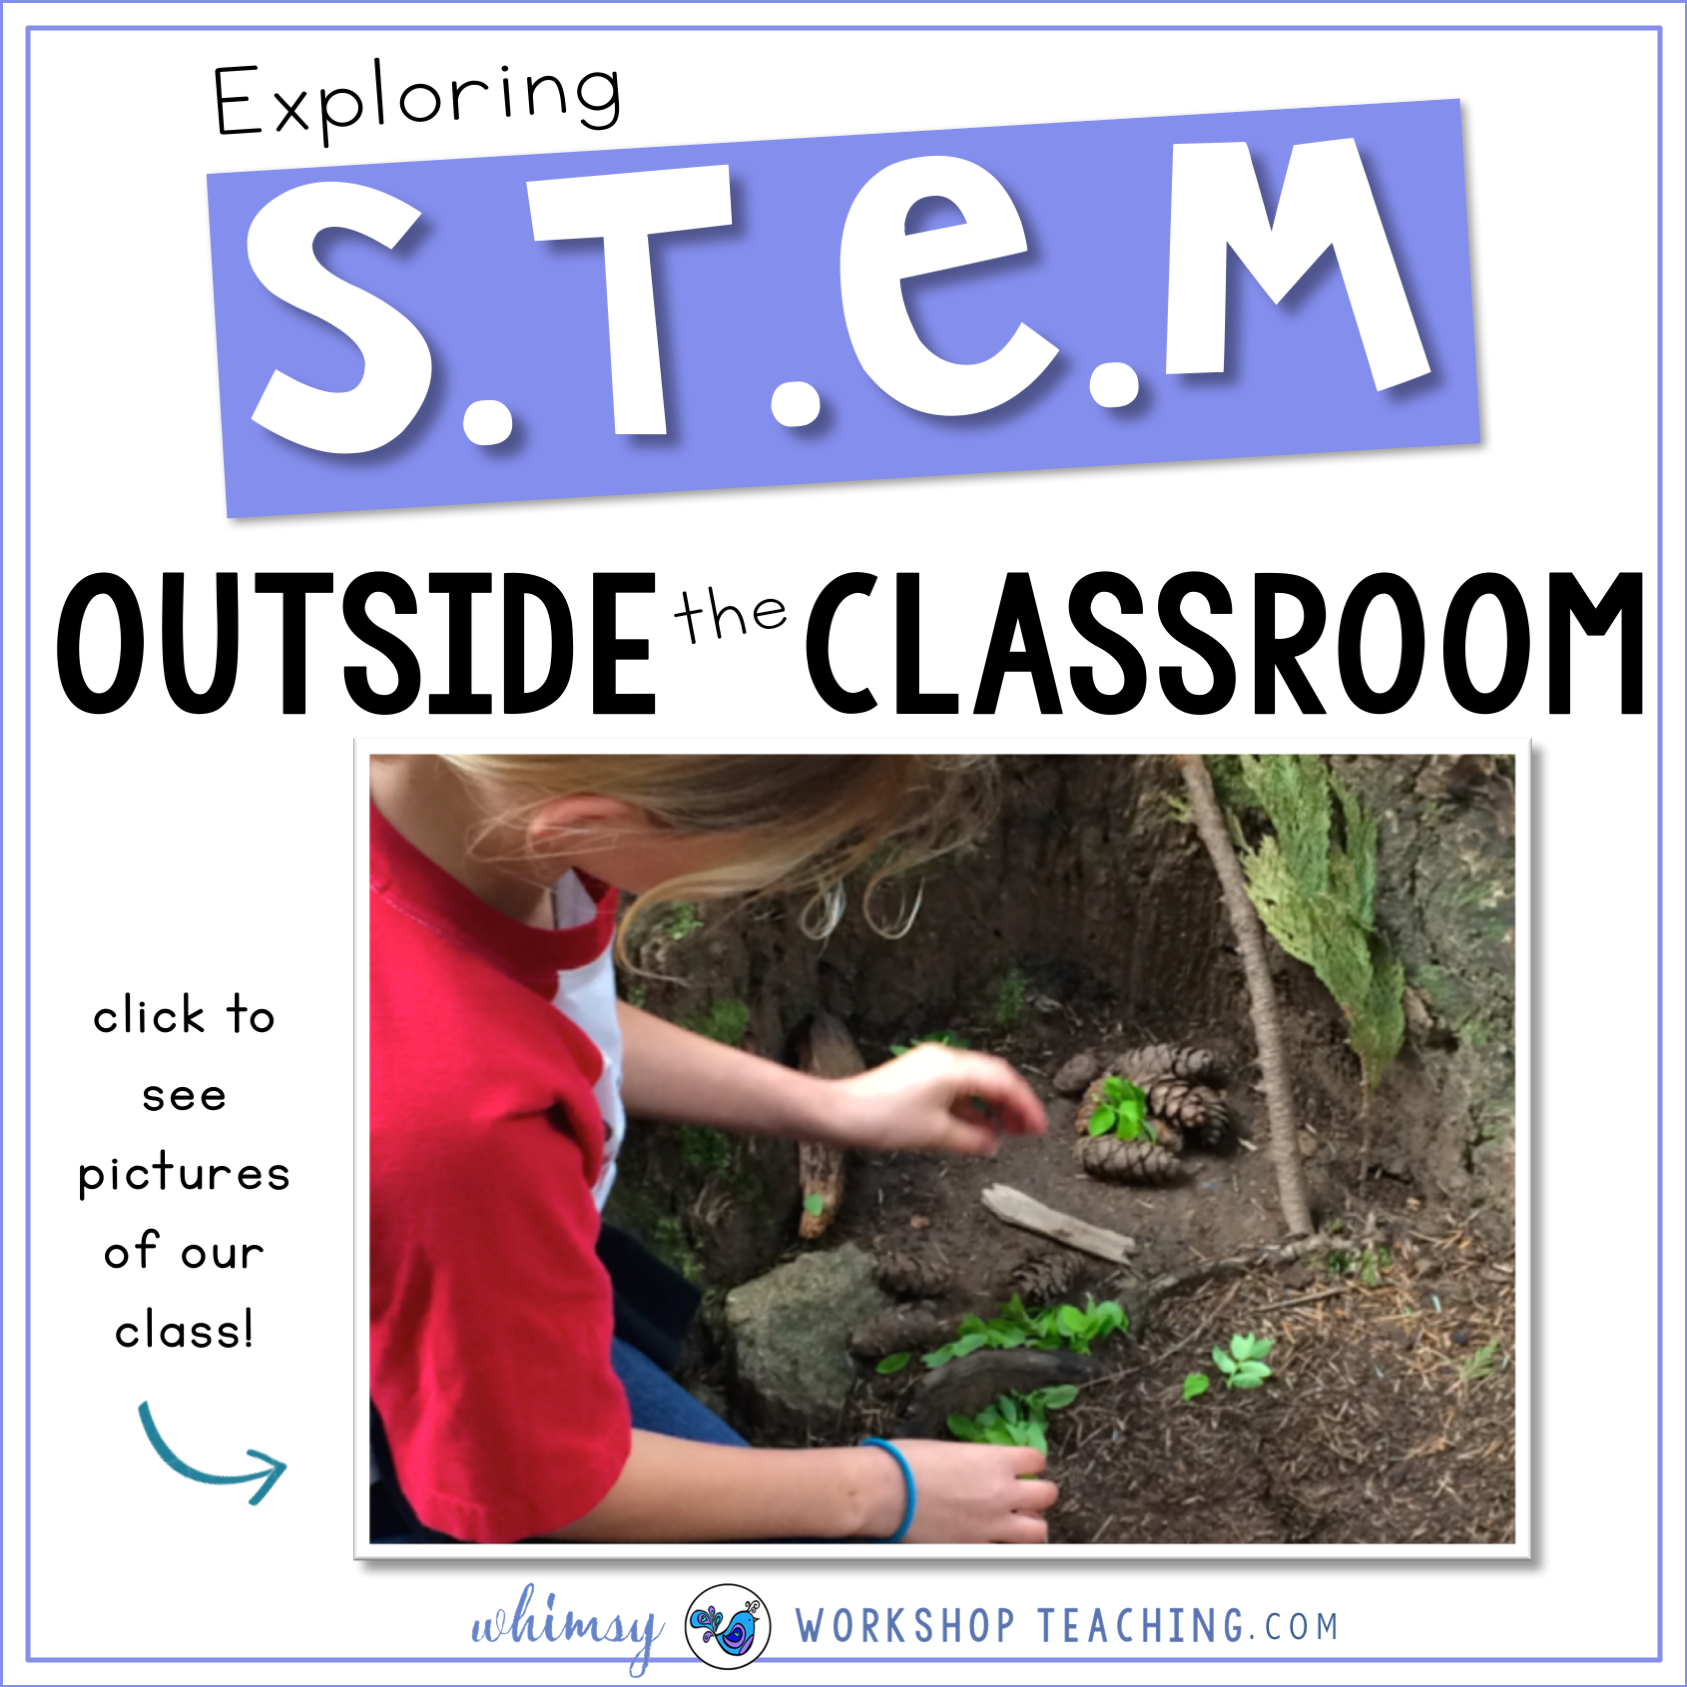 Exploring STEM outside the classroom with pictures from our class